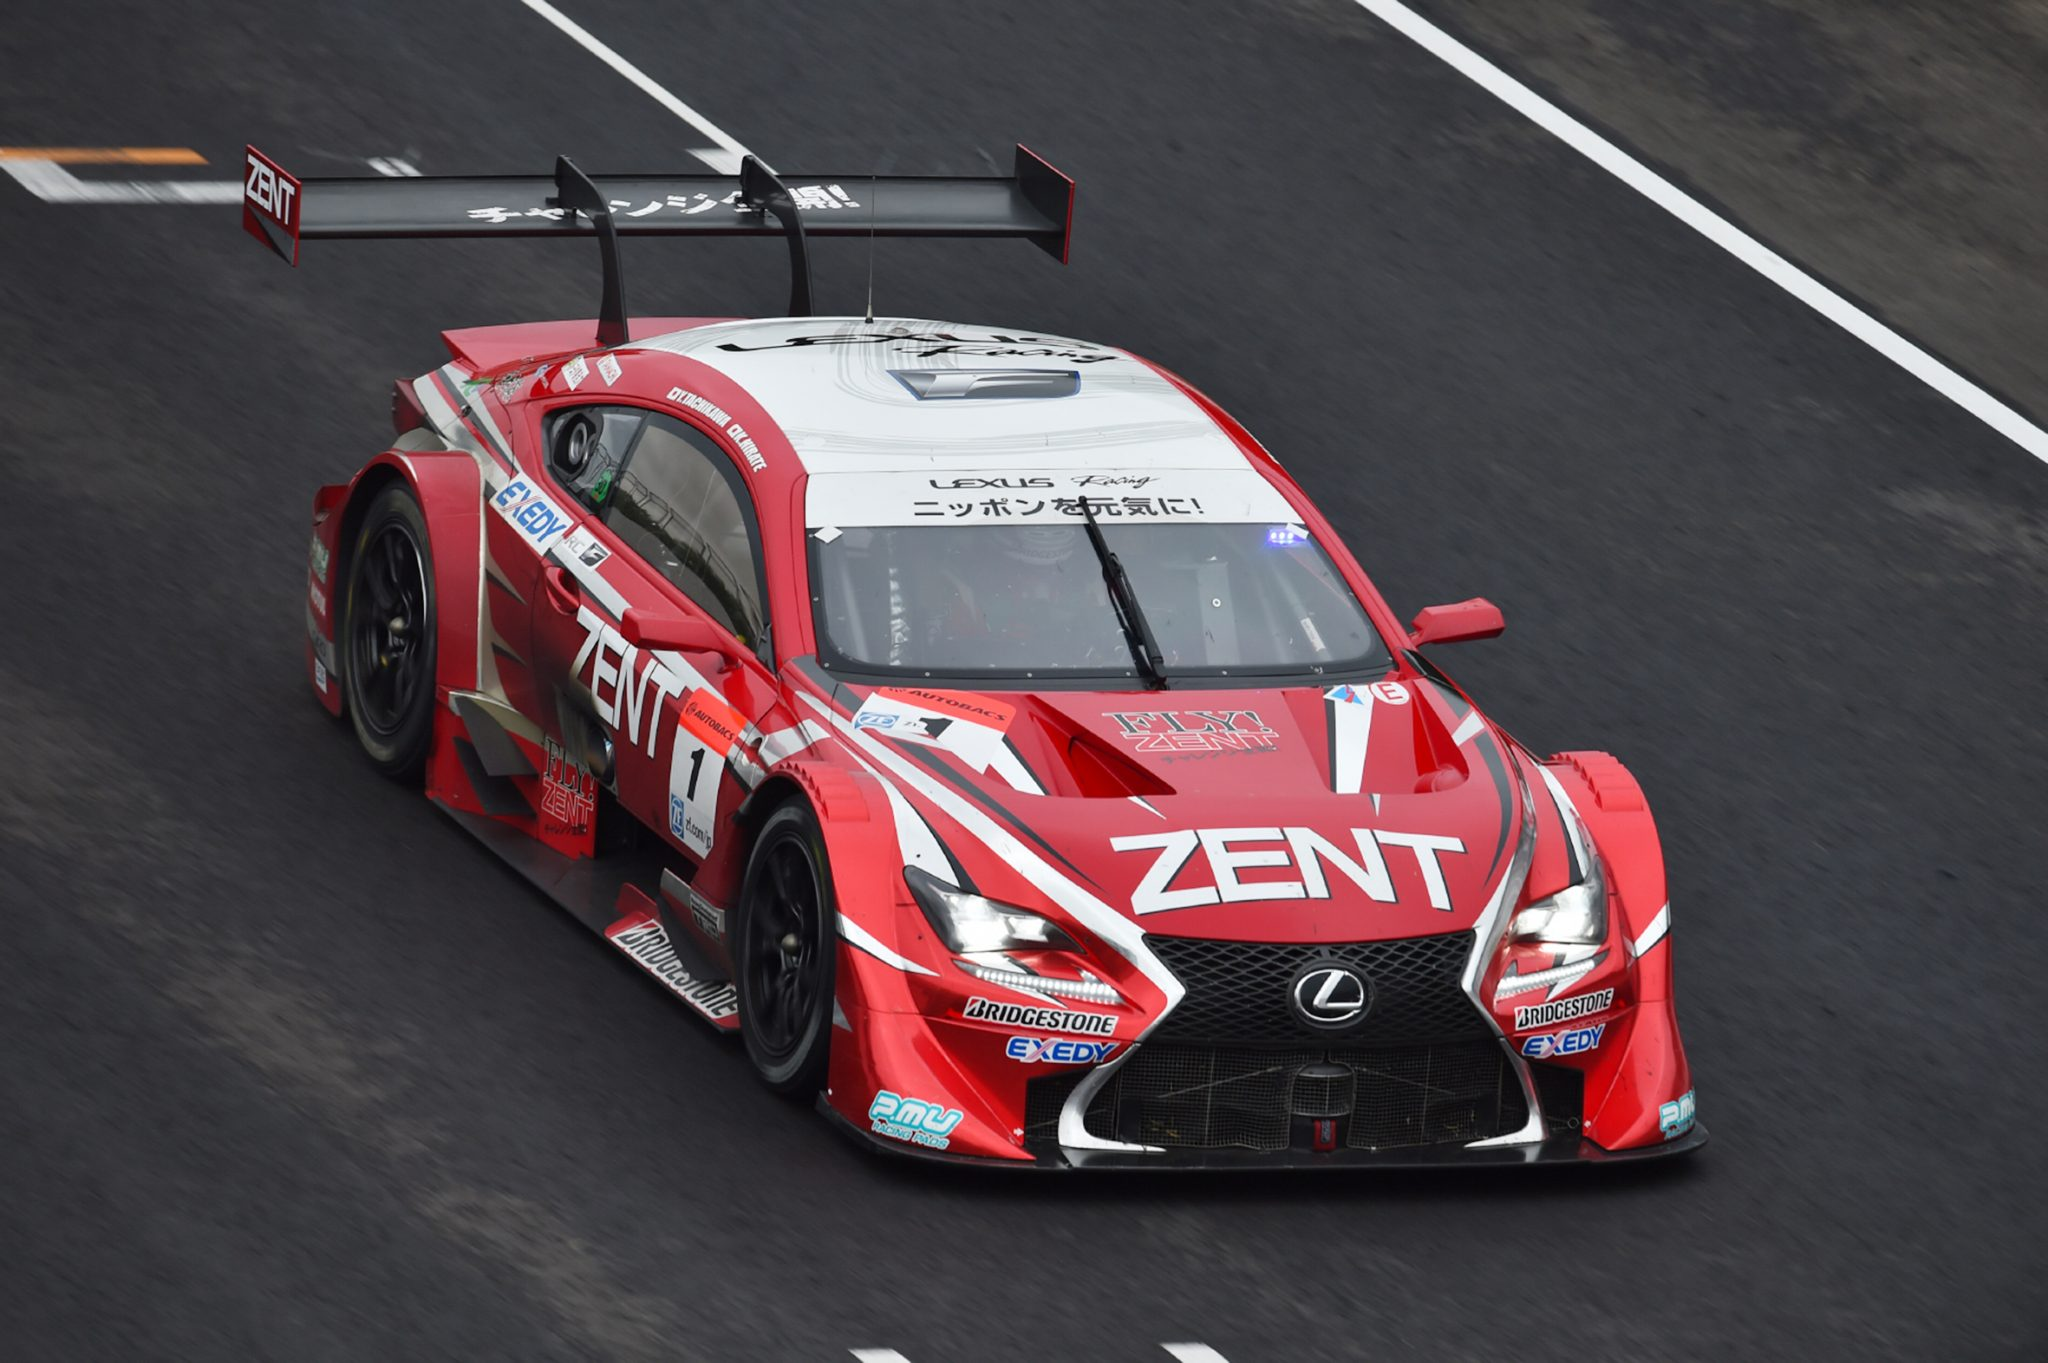 News: RC F SuperGT Takes Out Sugo 300